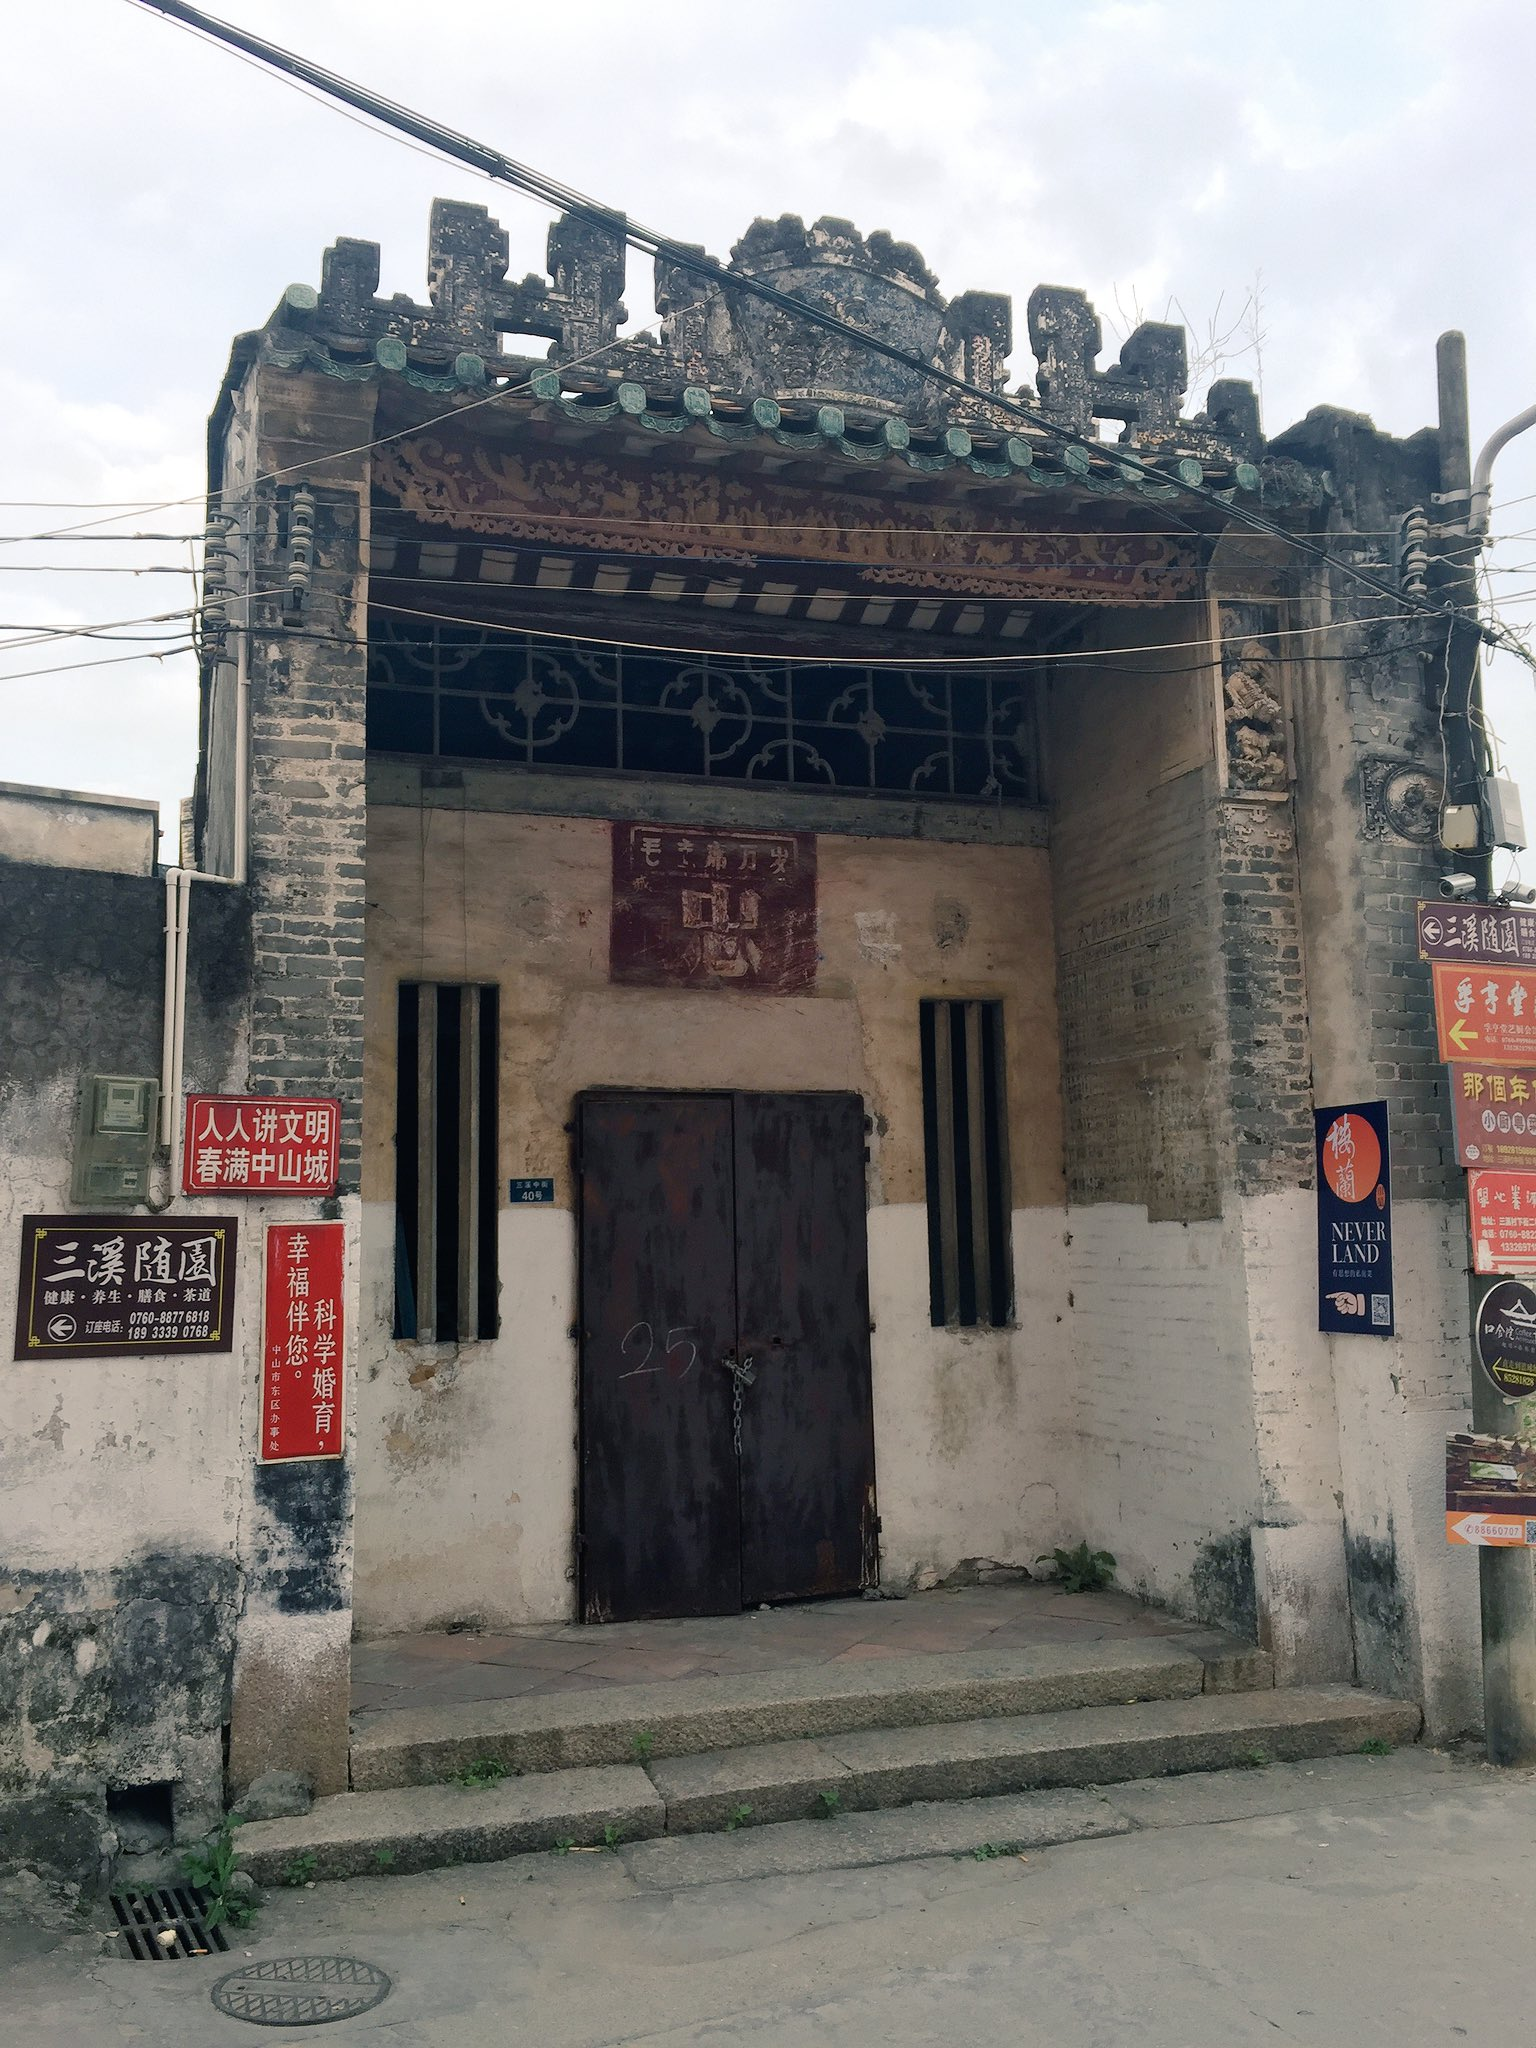 We're in Sanxi village in Zhongshan for dinner. #cahht17 https://t.co/E7yaGmIiLm